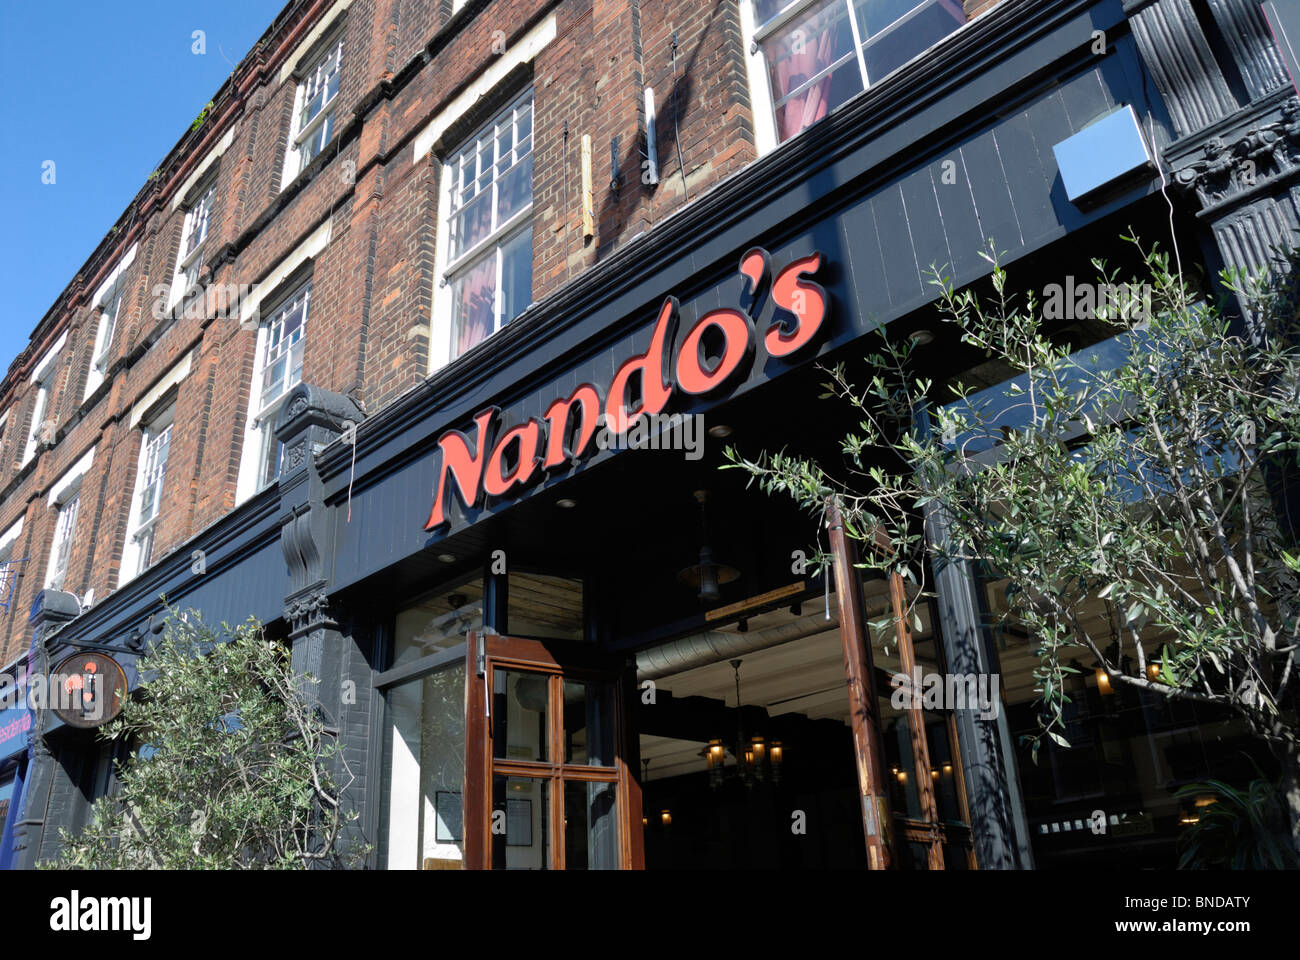 Nando's restaurant in Islington, London, England Stock Photo